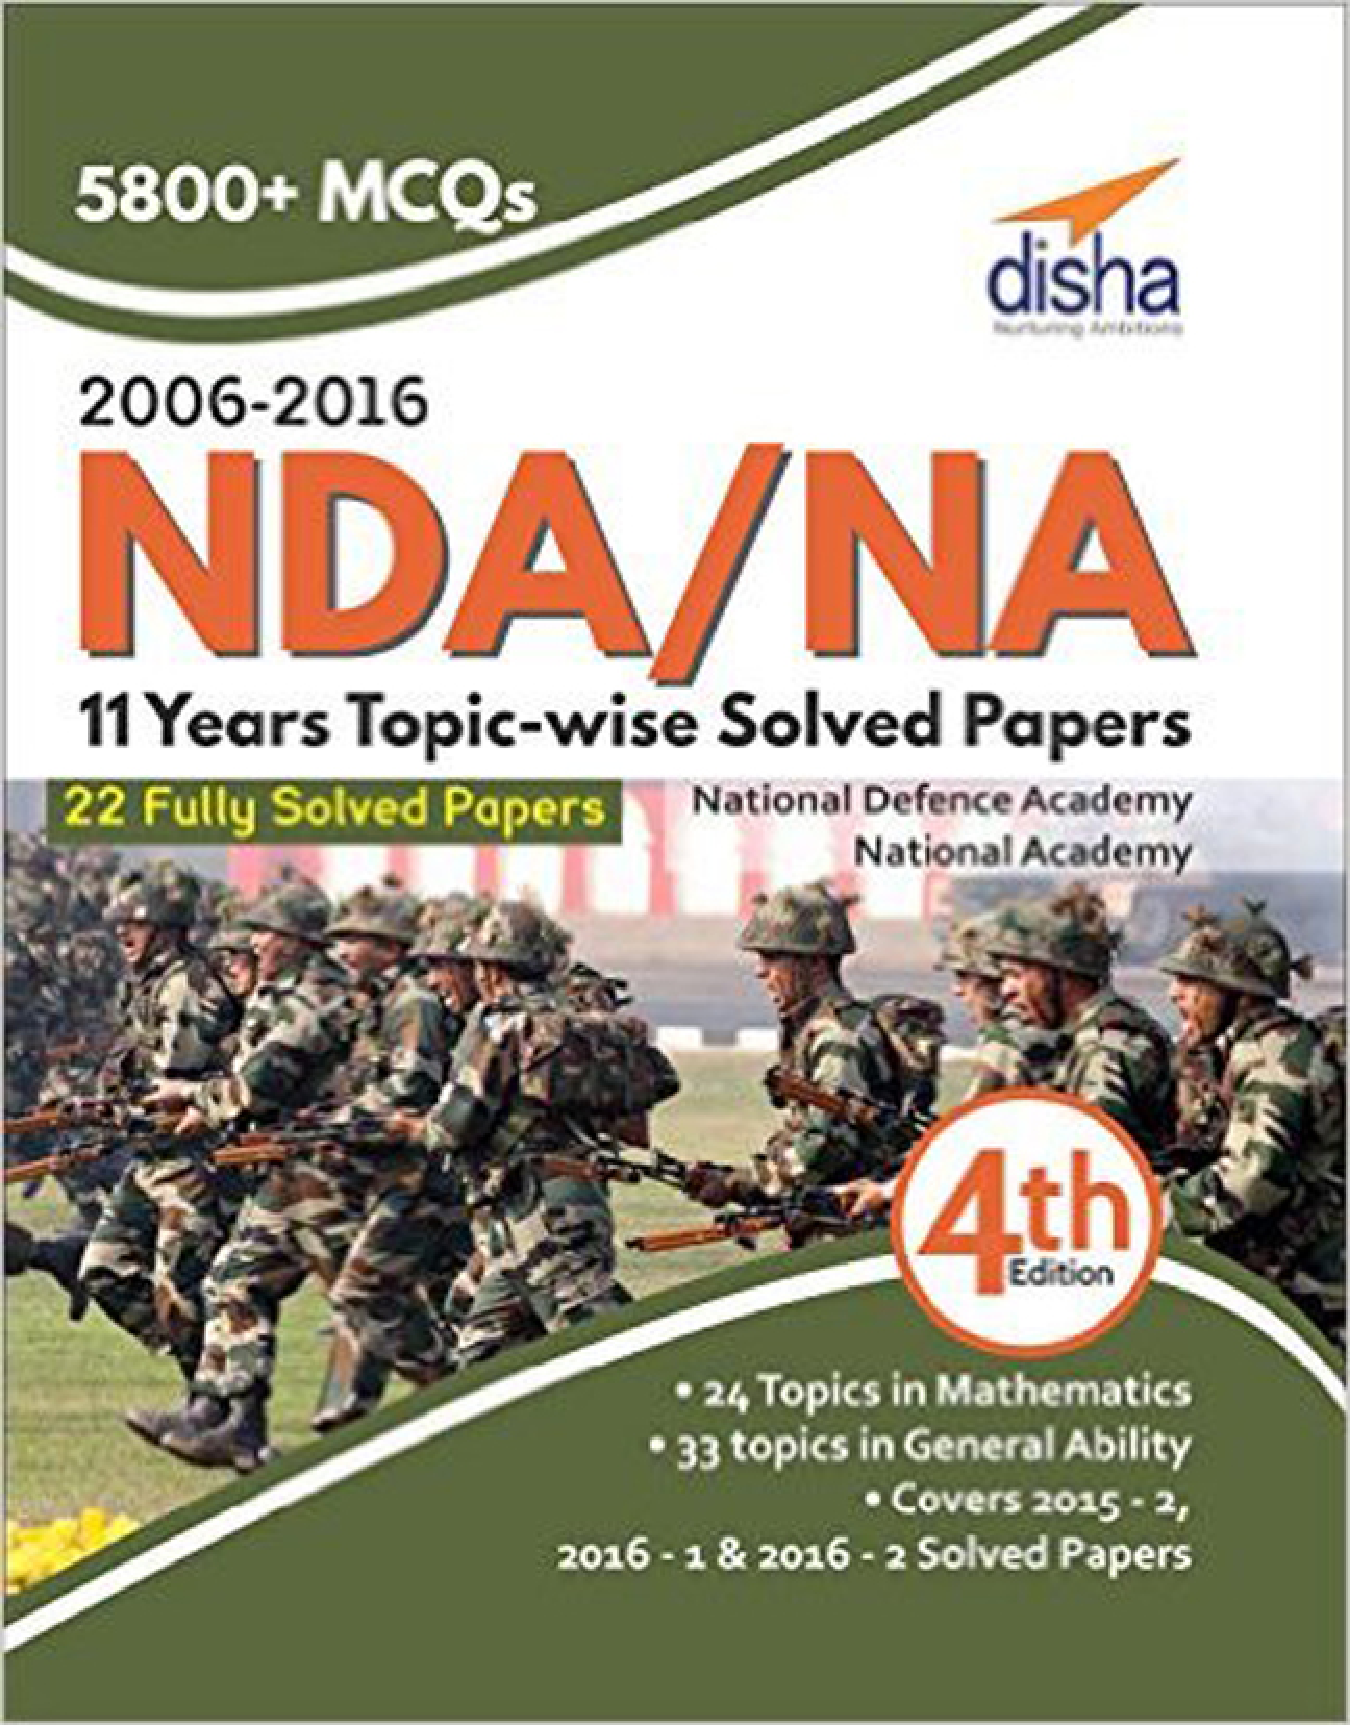 NDA/ NA 11 Years Topic-Wise Solved Papers (2006 - 2016) 4th Edition - Page 1